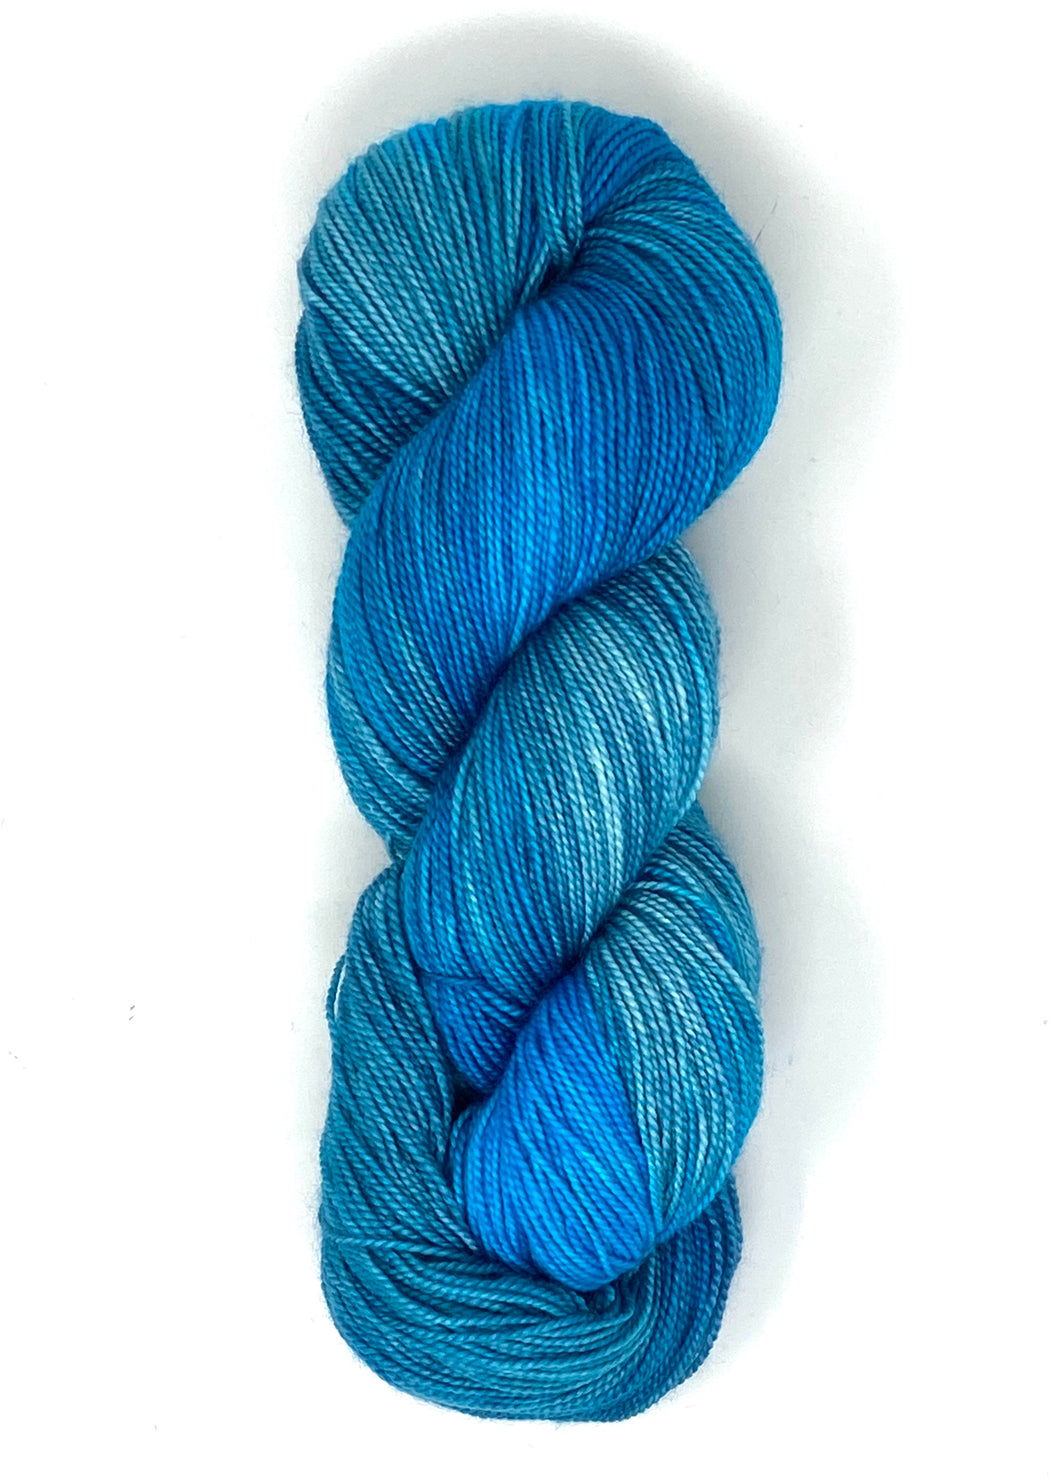 Midnight Rendezvous - Summer Tones 2020 - Baah Yarn La Jolla